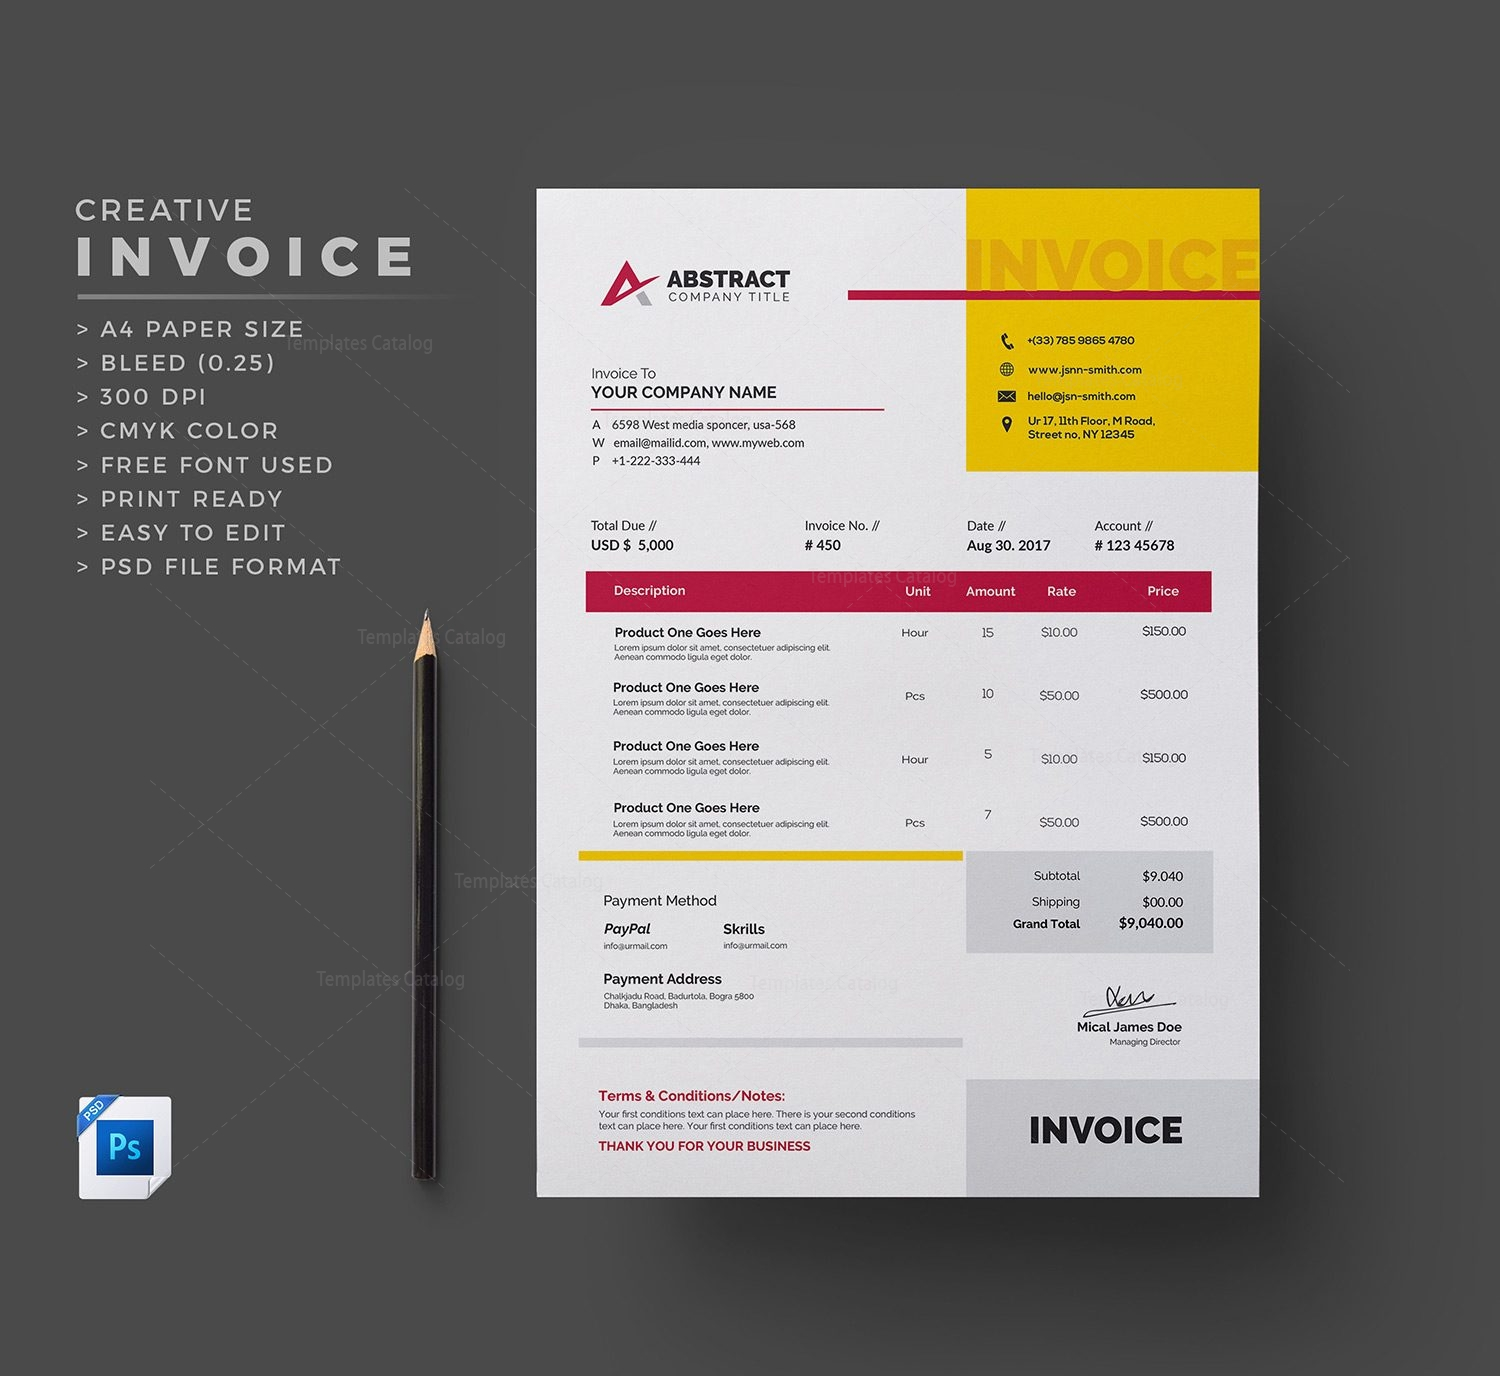 Free Invoice Template 000336 - Template Catalog